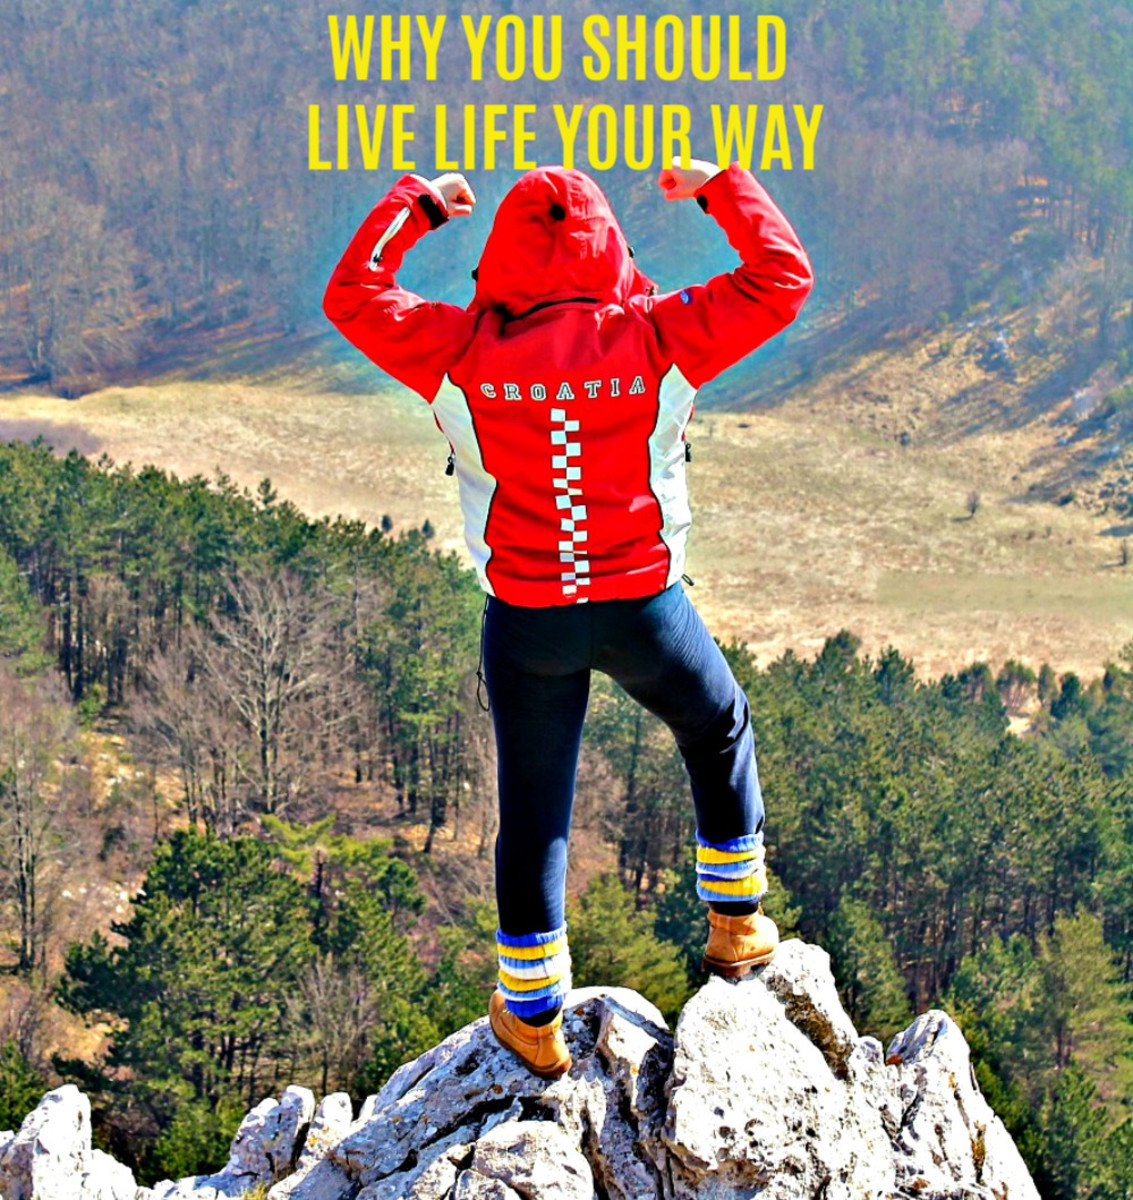 Why You Should Live Life Your Way